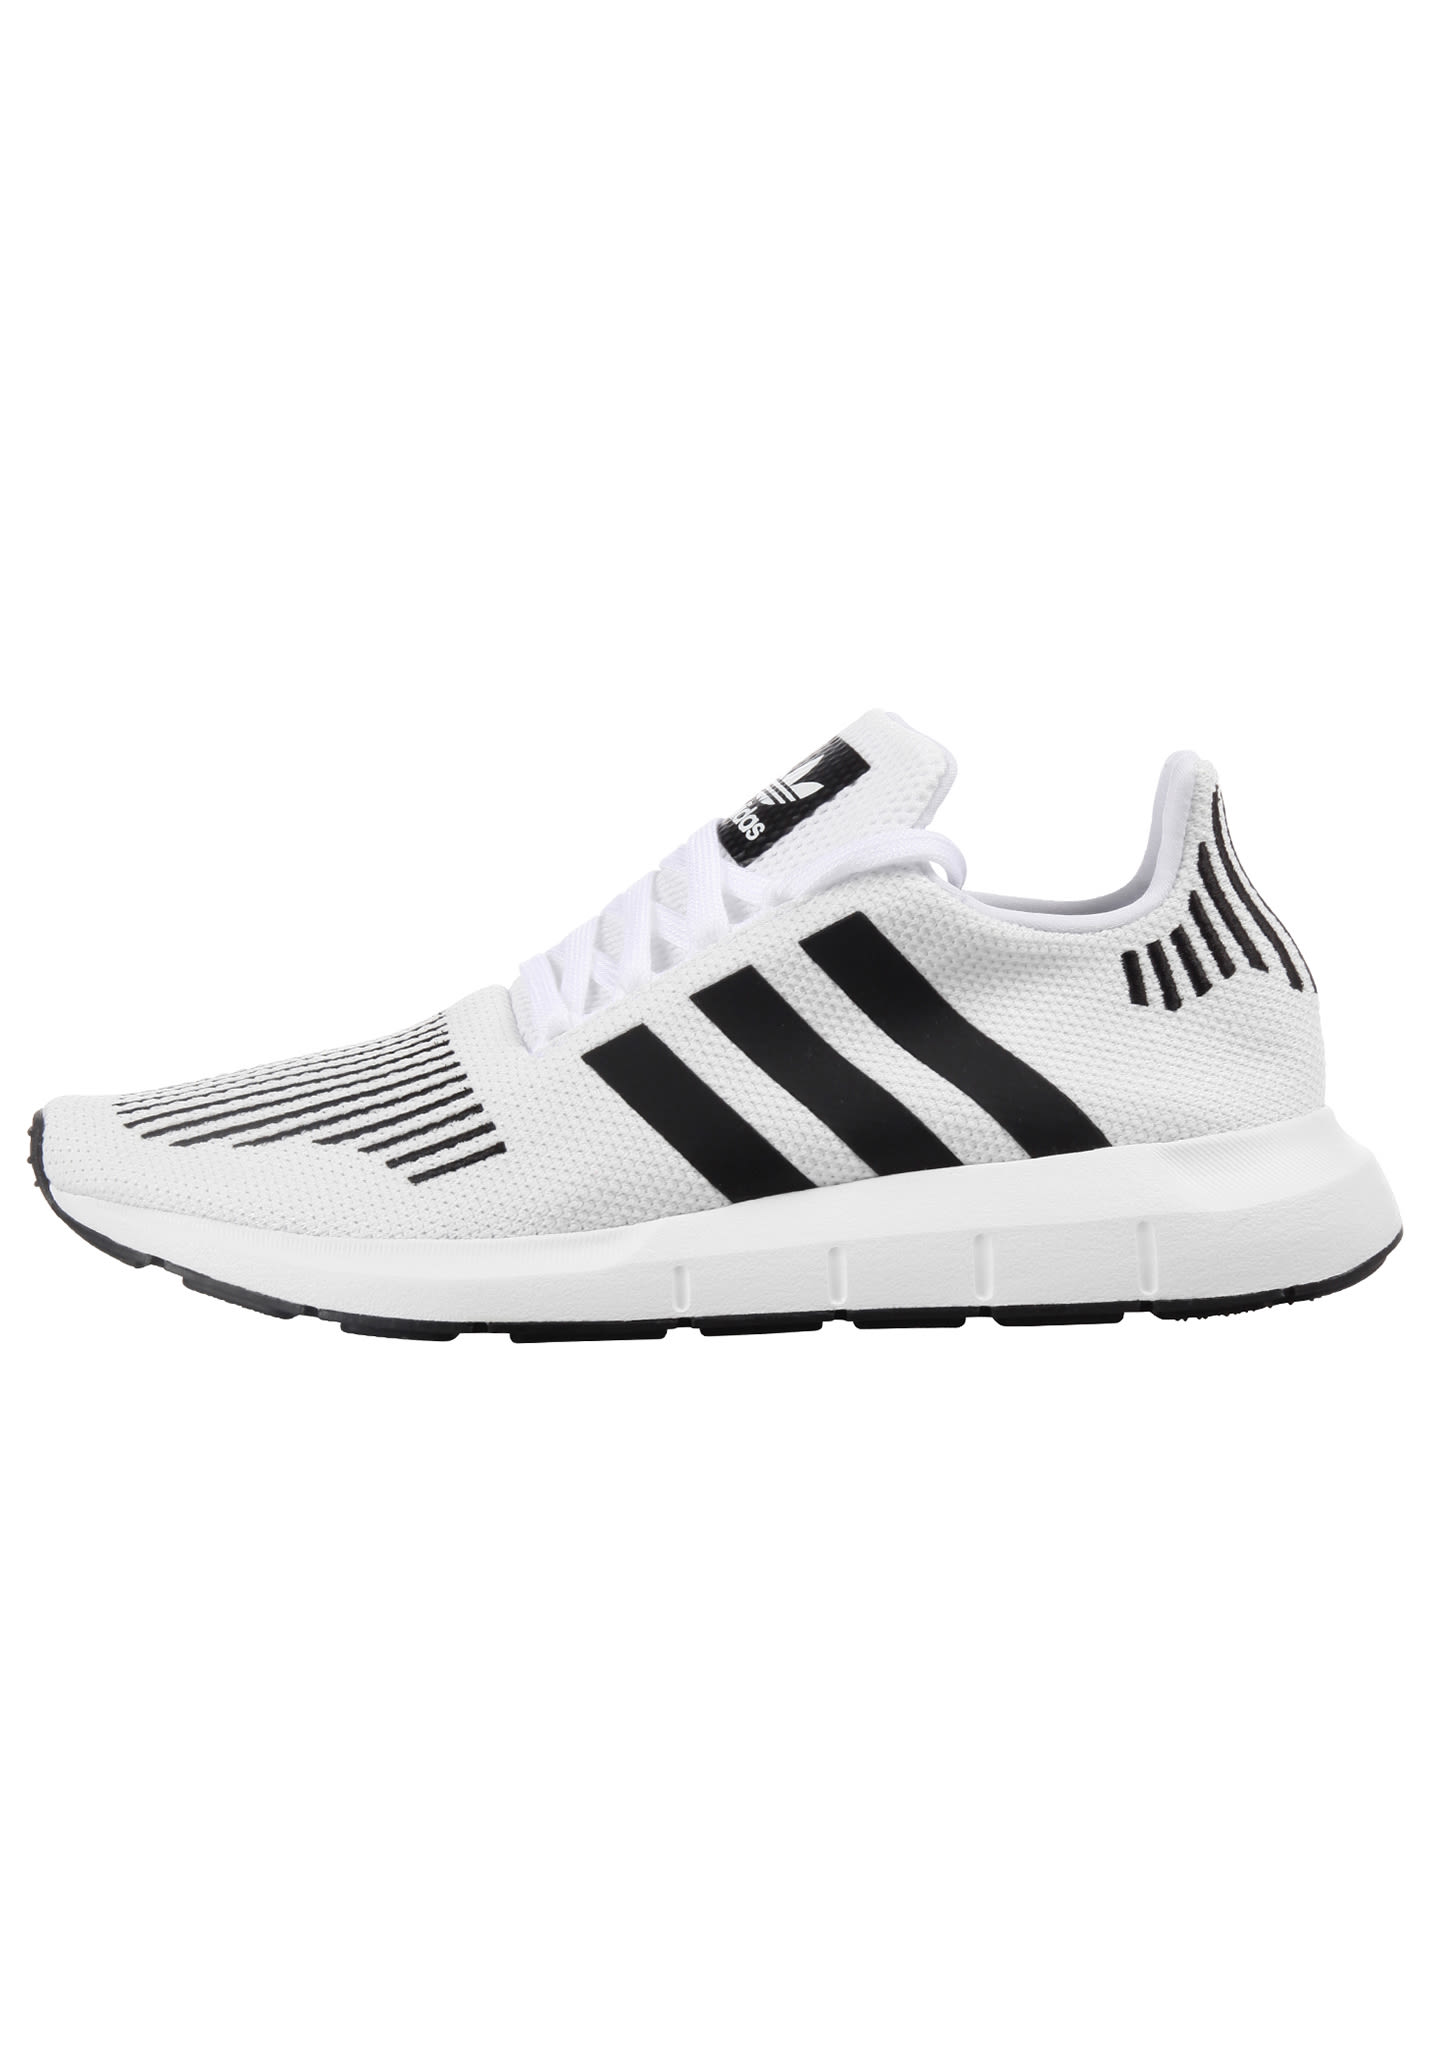 d71b152cf07 ADIDAS ORIGINALS Swift Run - Baskets pour Homme - Blanc - Planet Sports